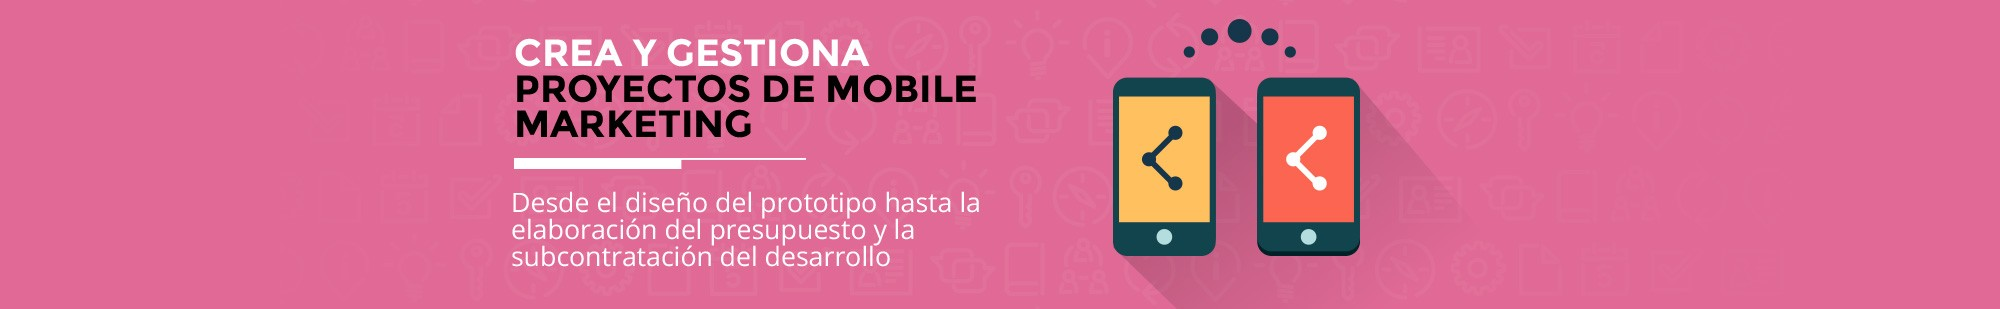 Curso de Mobile Marketing